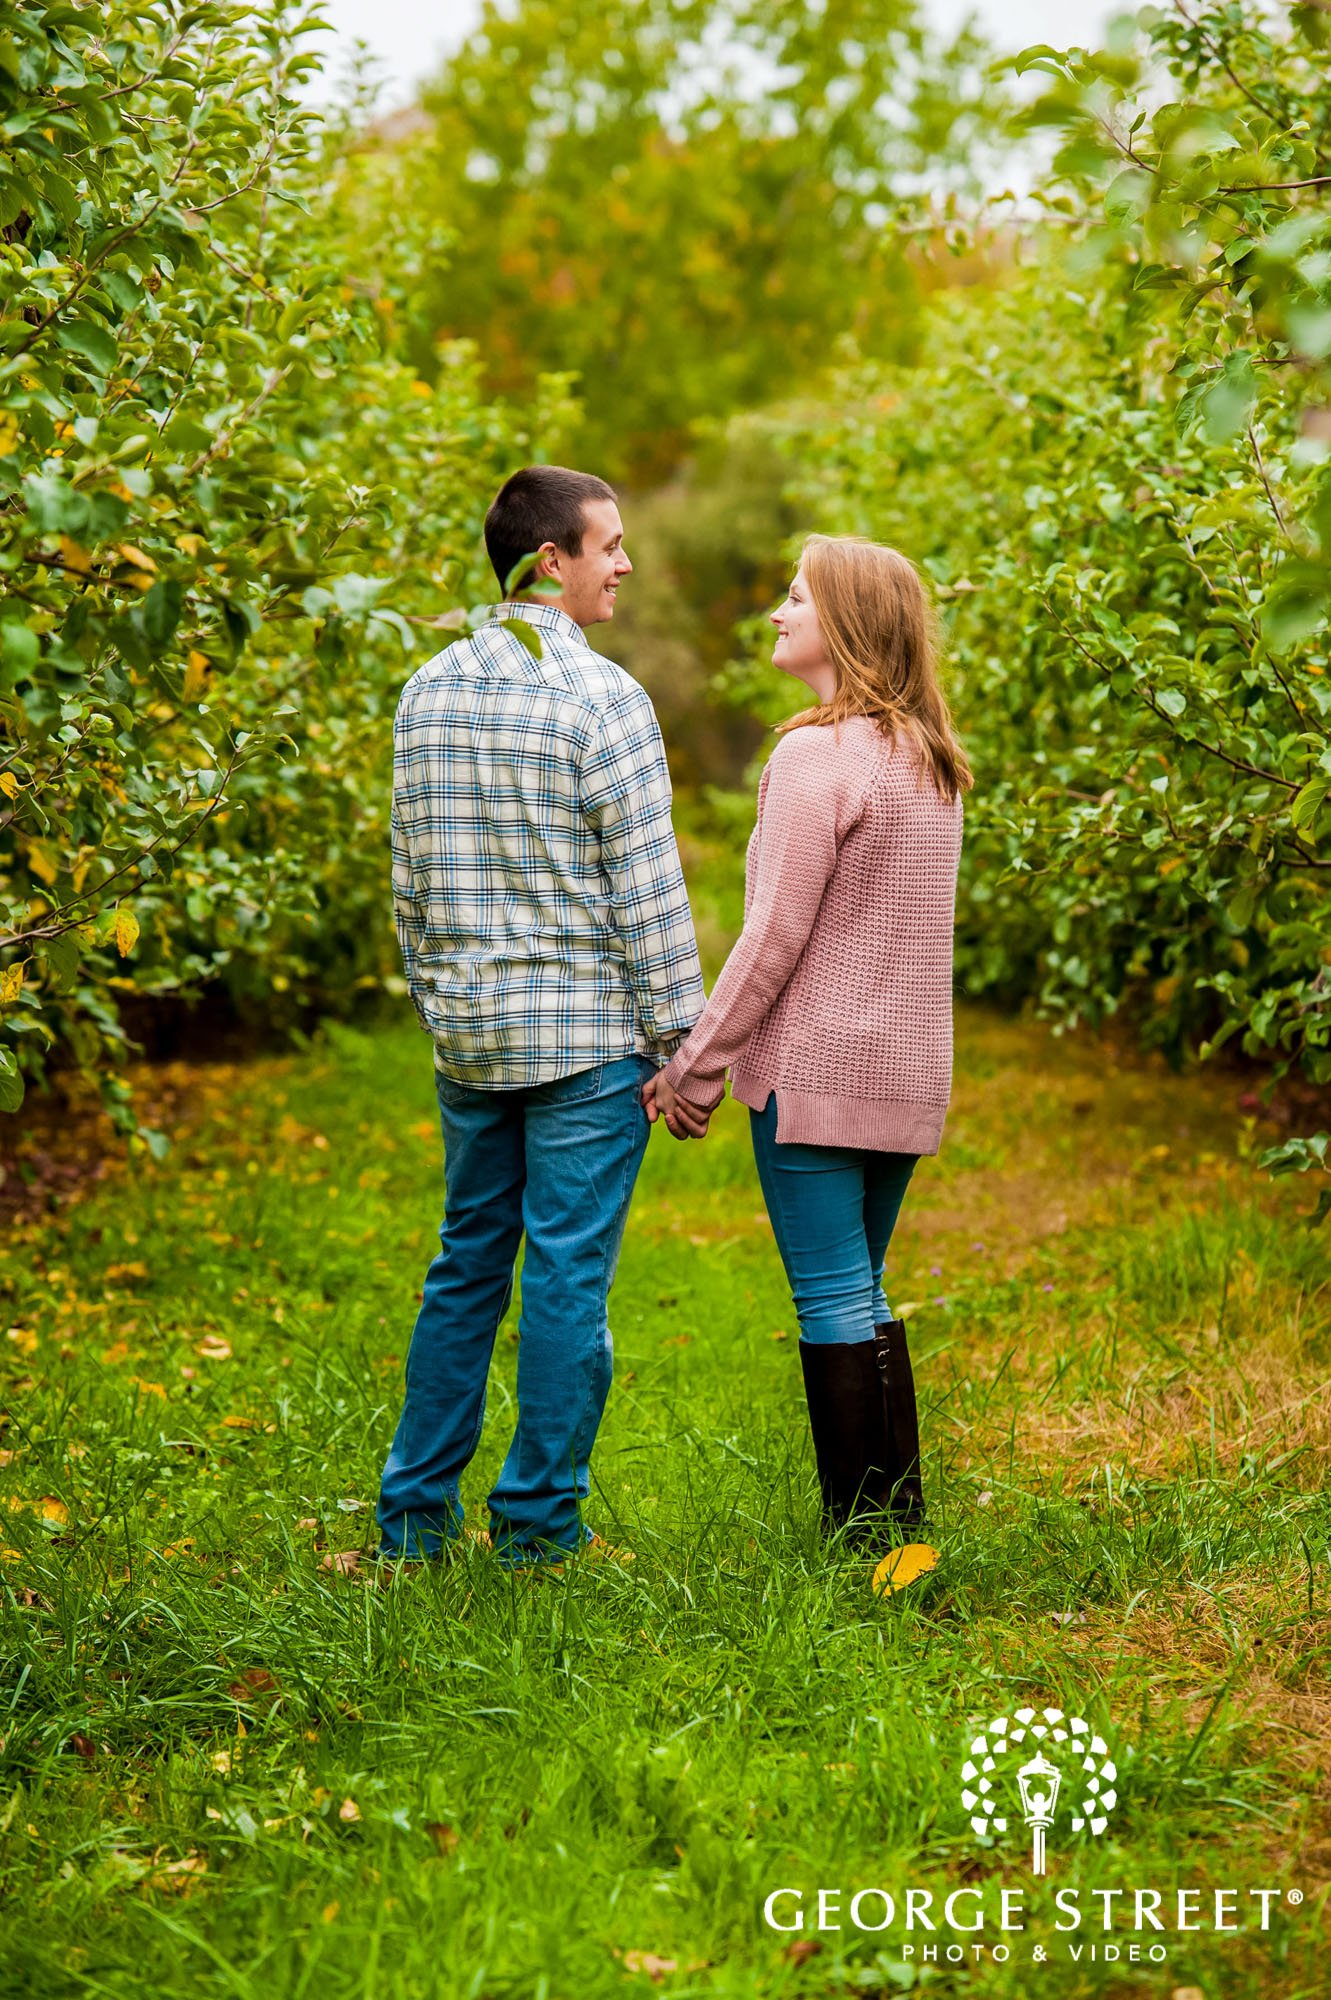 lyman orchards cute greenery sweater hartford engagement photography 5